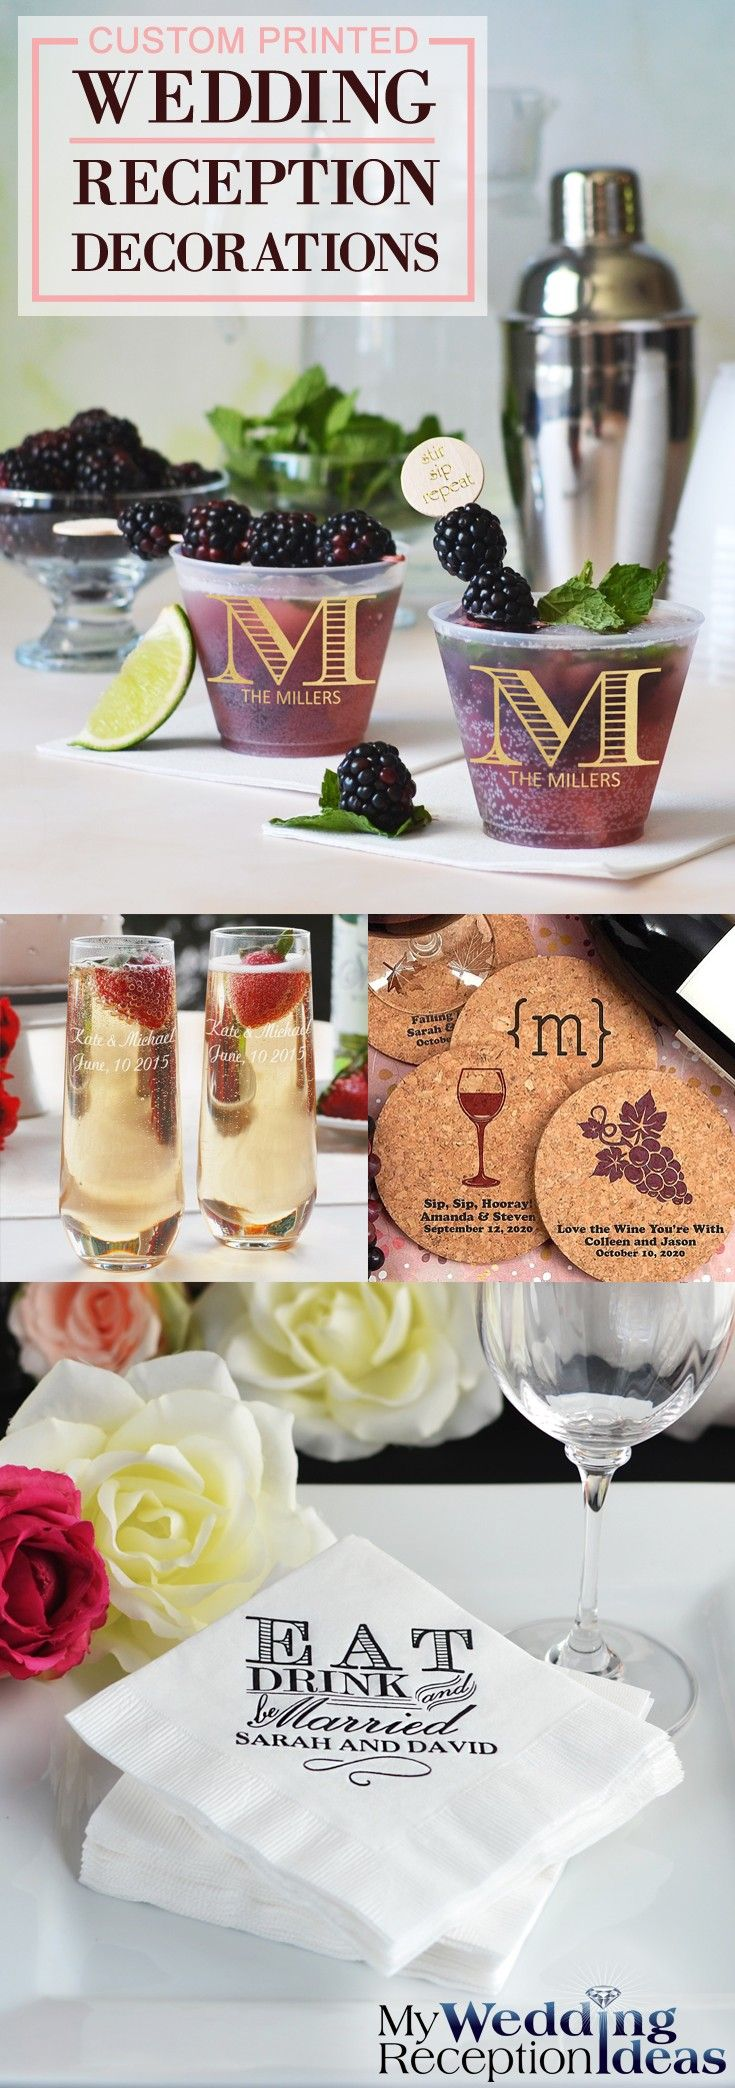 Add a personal touch to your wedding that is uniquely you with personalized wedding reception decorations. Cocktail napkins, coasters and cups custom printed with a wedding design or monogram, the bride and groom's name and wedding date and a short thank you message will make your wedding reception tables, bar, cake table and bridal table decor pop with character and impress each one of your guests. These wedding reception decorations can be ordered at https://myweddingreceptionideas.com/